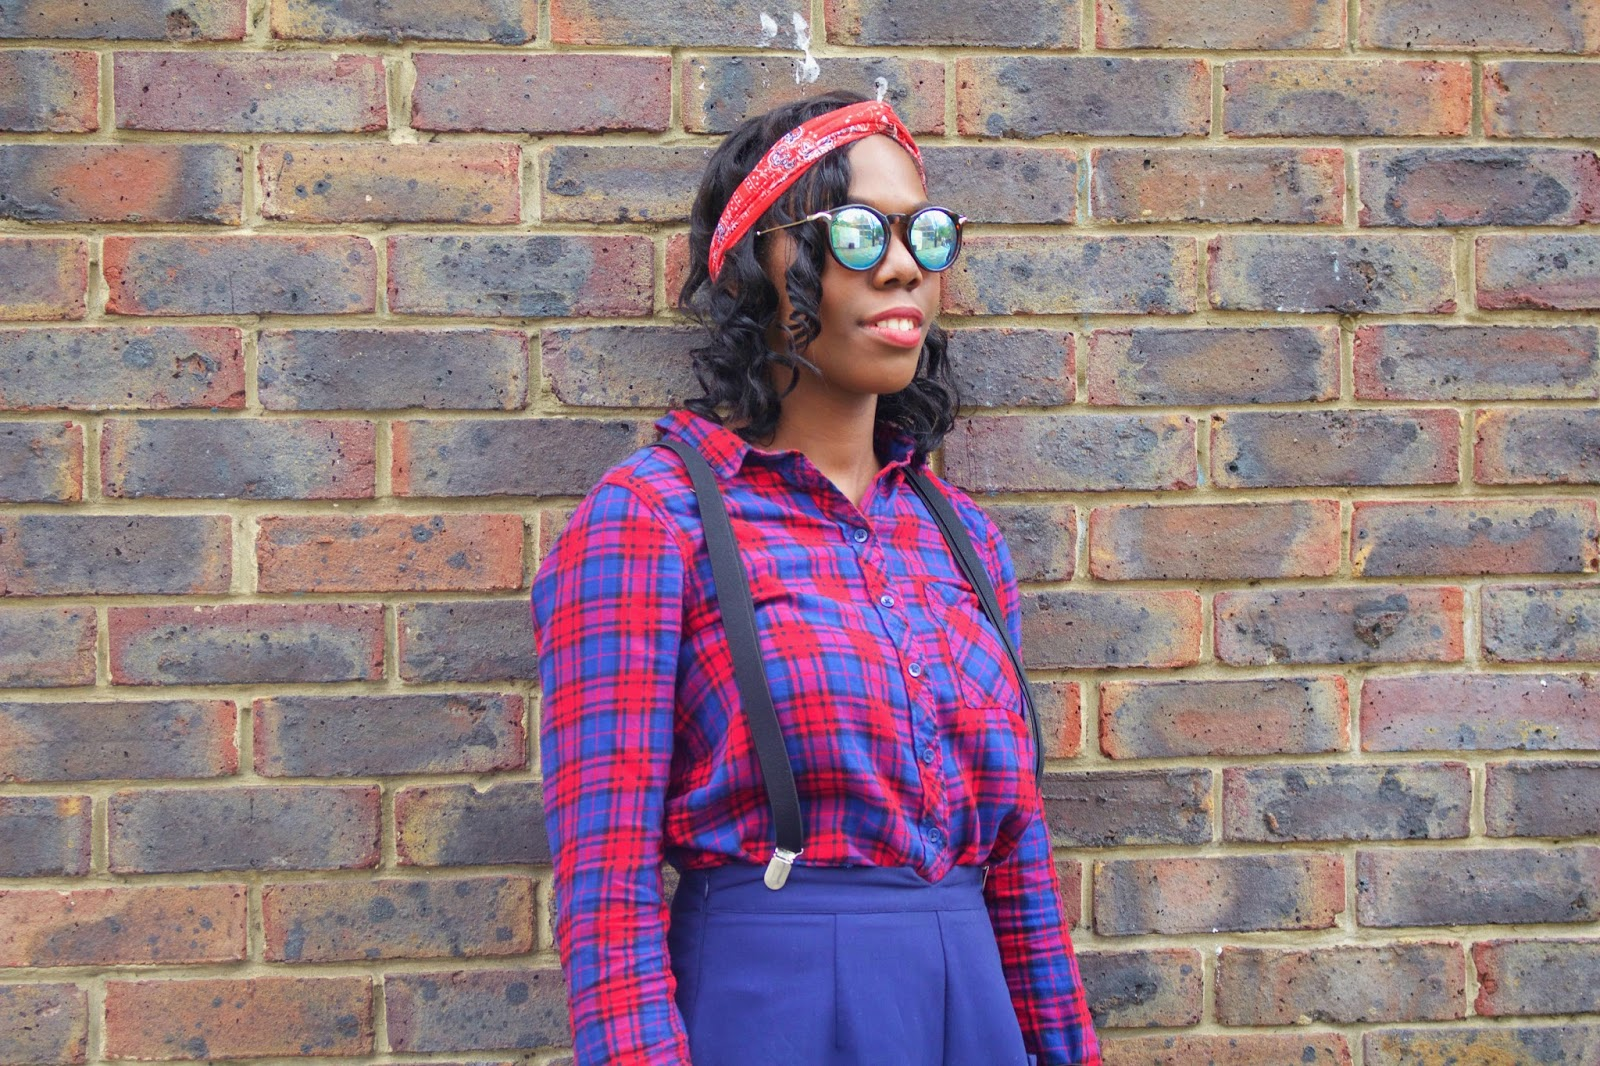 The Post Blogging Event Comedown, H&M checked shirt, H&M Red headband, ASOS green sunglasses, missguided navy high waisted shorts, black topshop braces, style blogger, fashion blogger, brick wall, uk blogger, black girls who blog